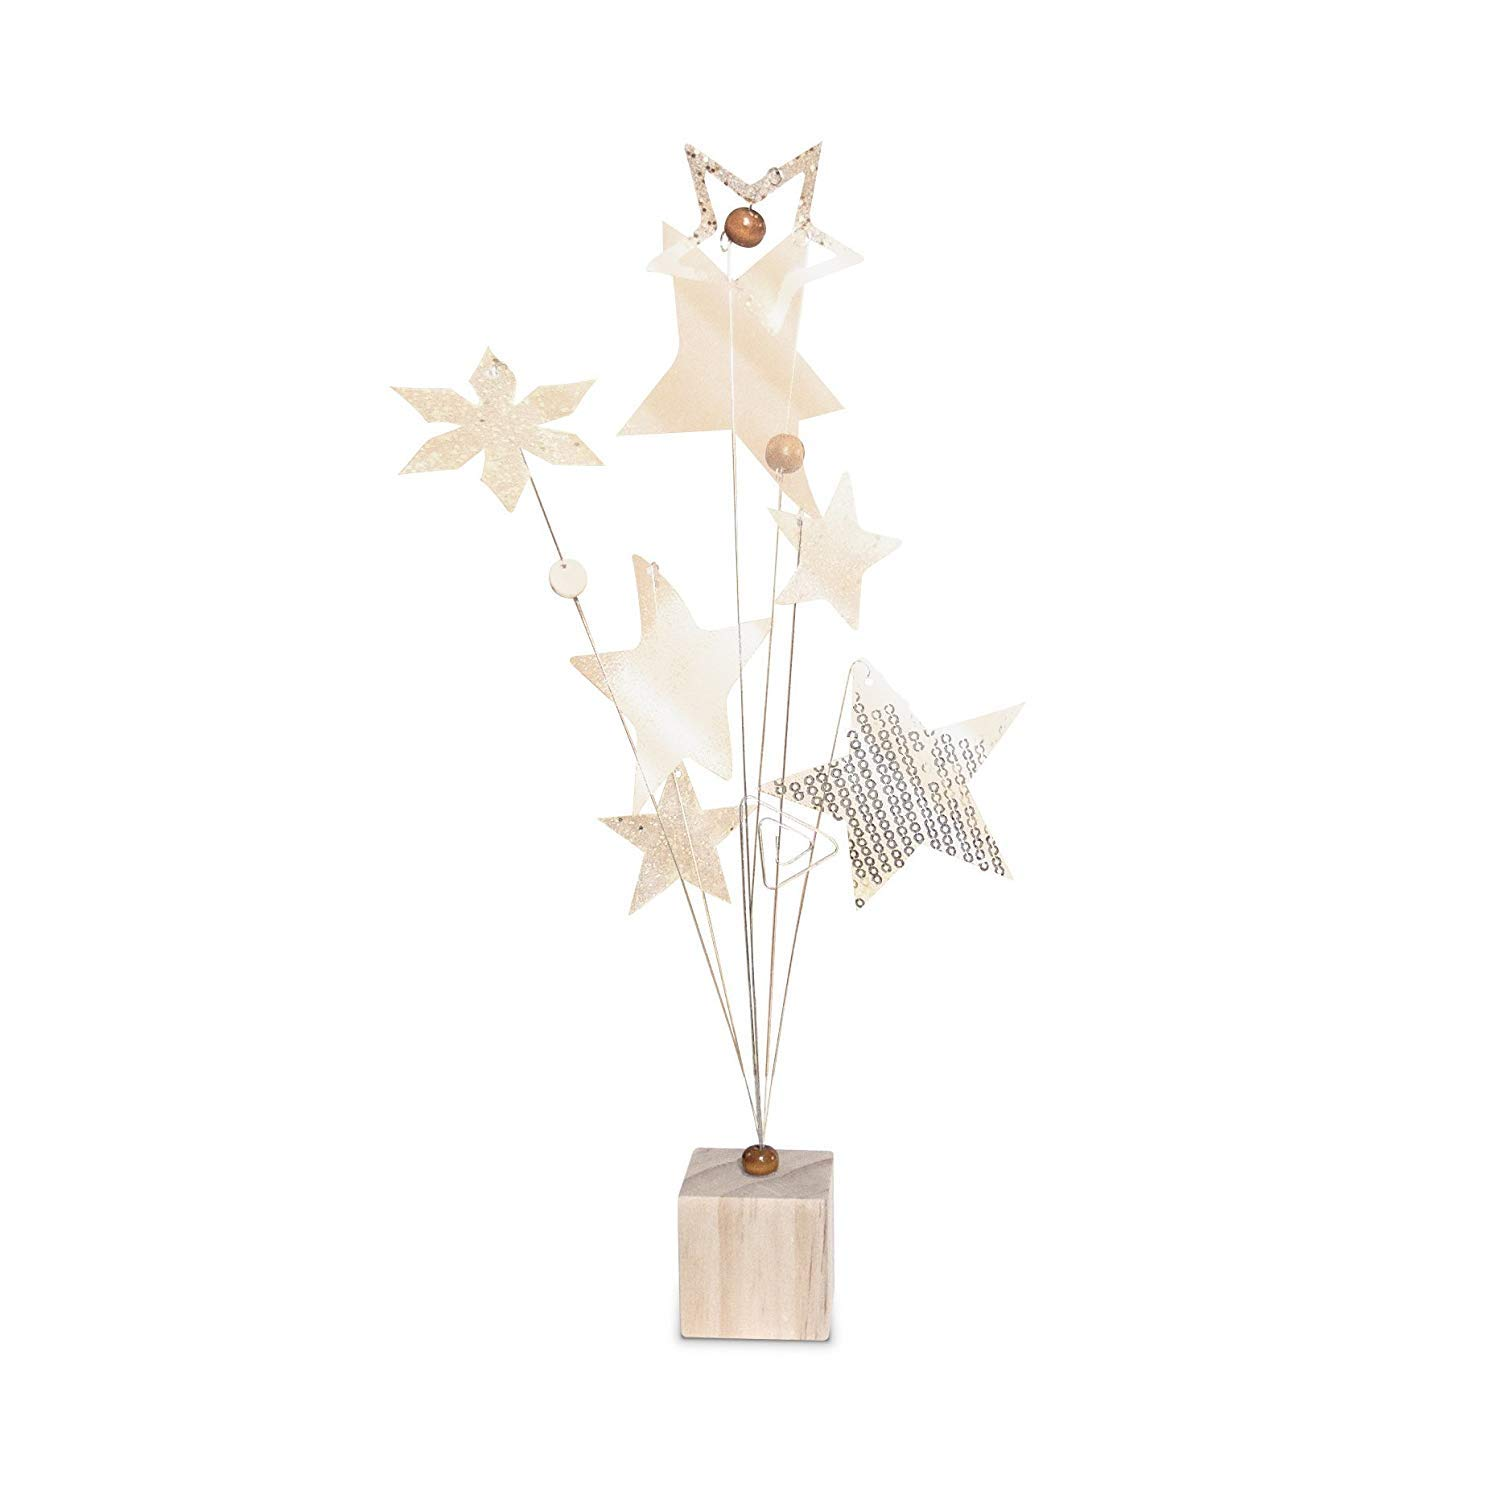 23 Bees | Table Centerpieces for Party | Photo Holder (Rustic Gold Handcrafted Star Design, 6 Pack) | Centerpiece Holders for Tables with Individual Card Number Slots | Dining Room & Kitchen Decor